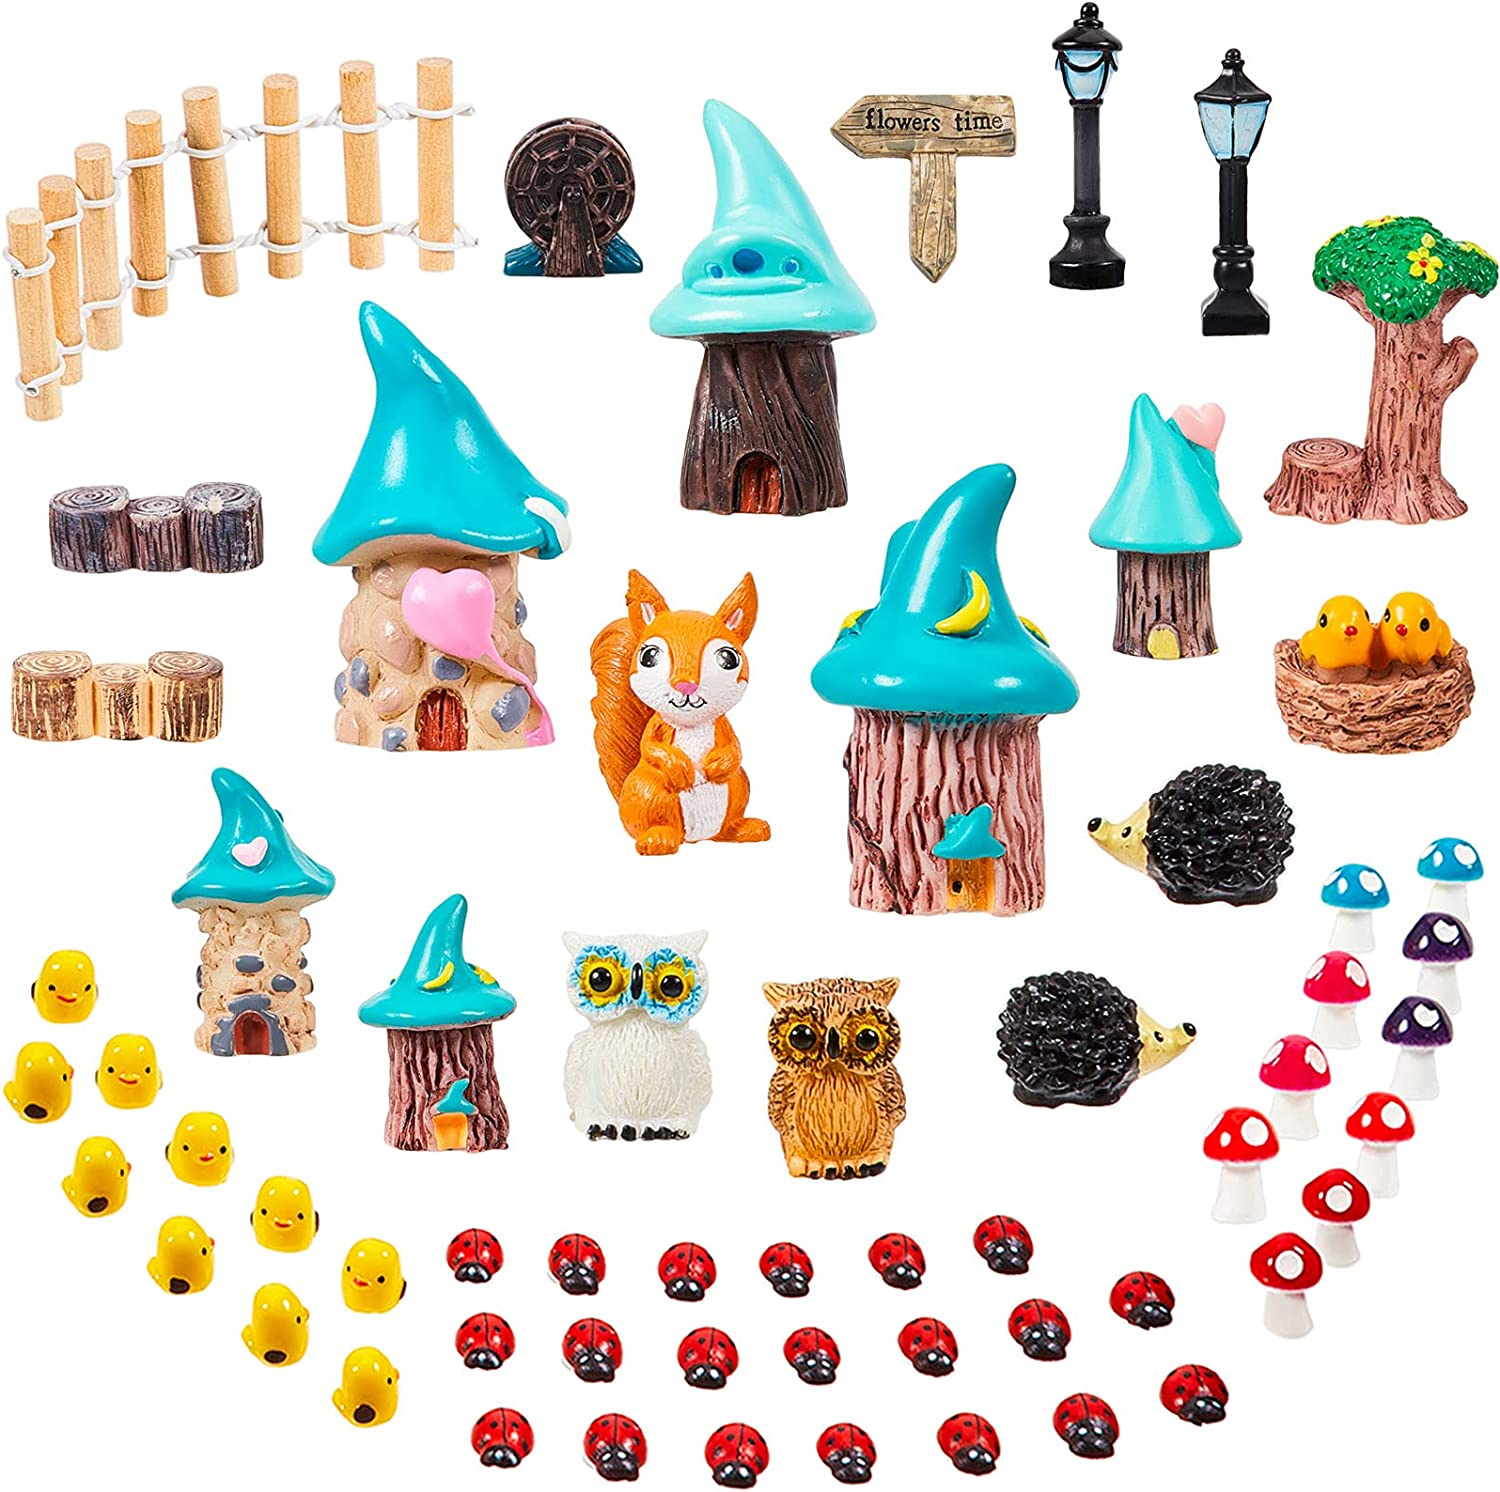 60 Pieces Miniature Fairy Garden Accessories Micro Landscape Ornaments Mini House and Mushroom Figurines Miniature Animals Decorations Outdoor for Dollhouse Potted Plant Patio